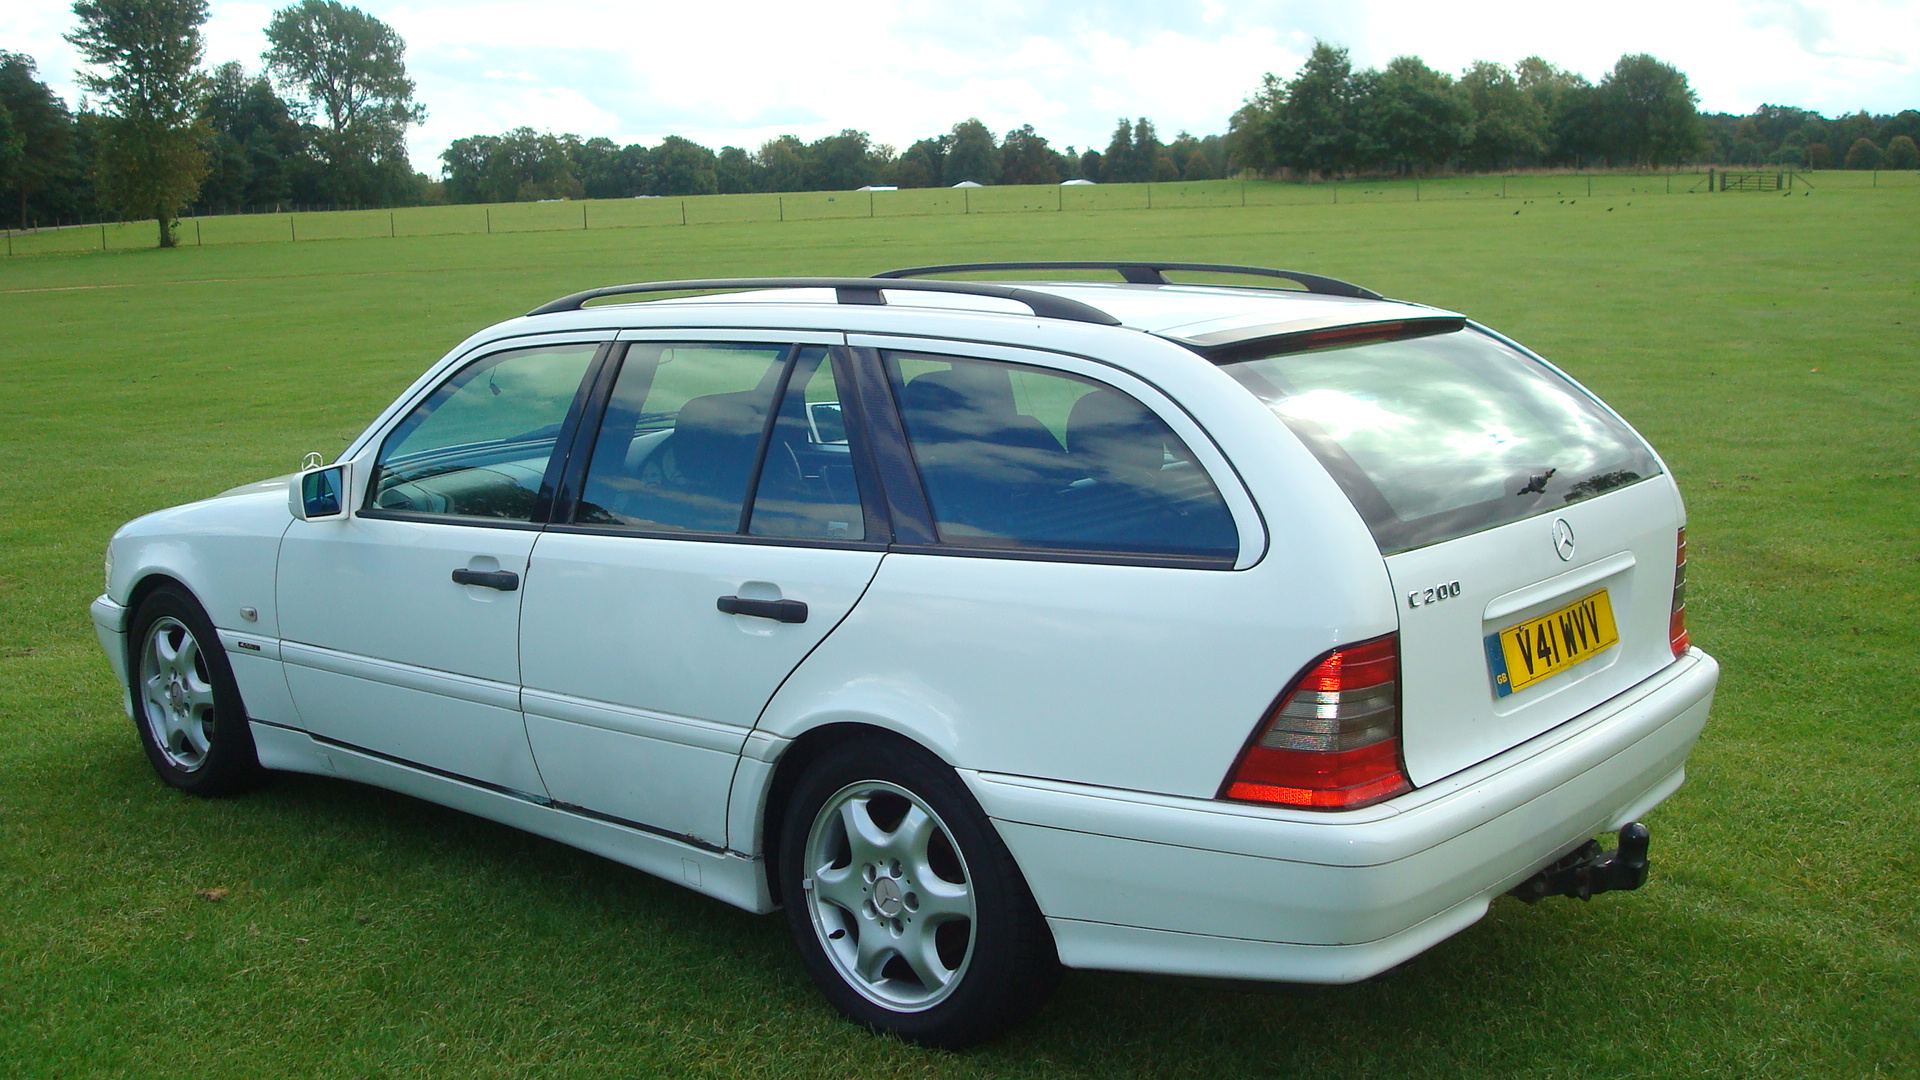 Mercedes Benz C200 Sport Estate Country Classics